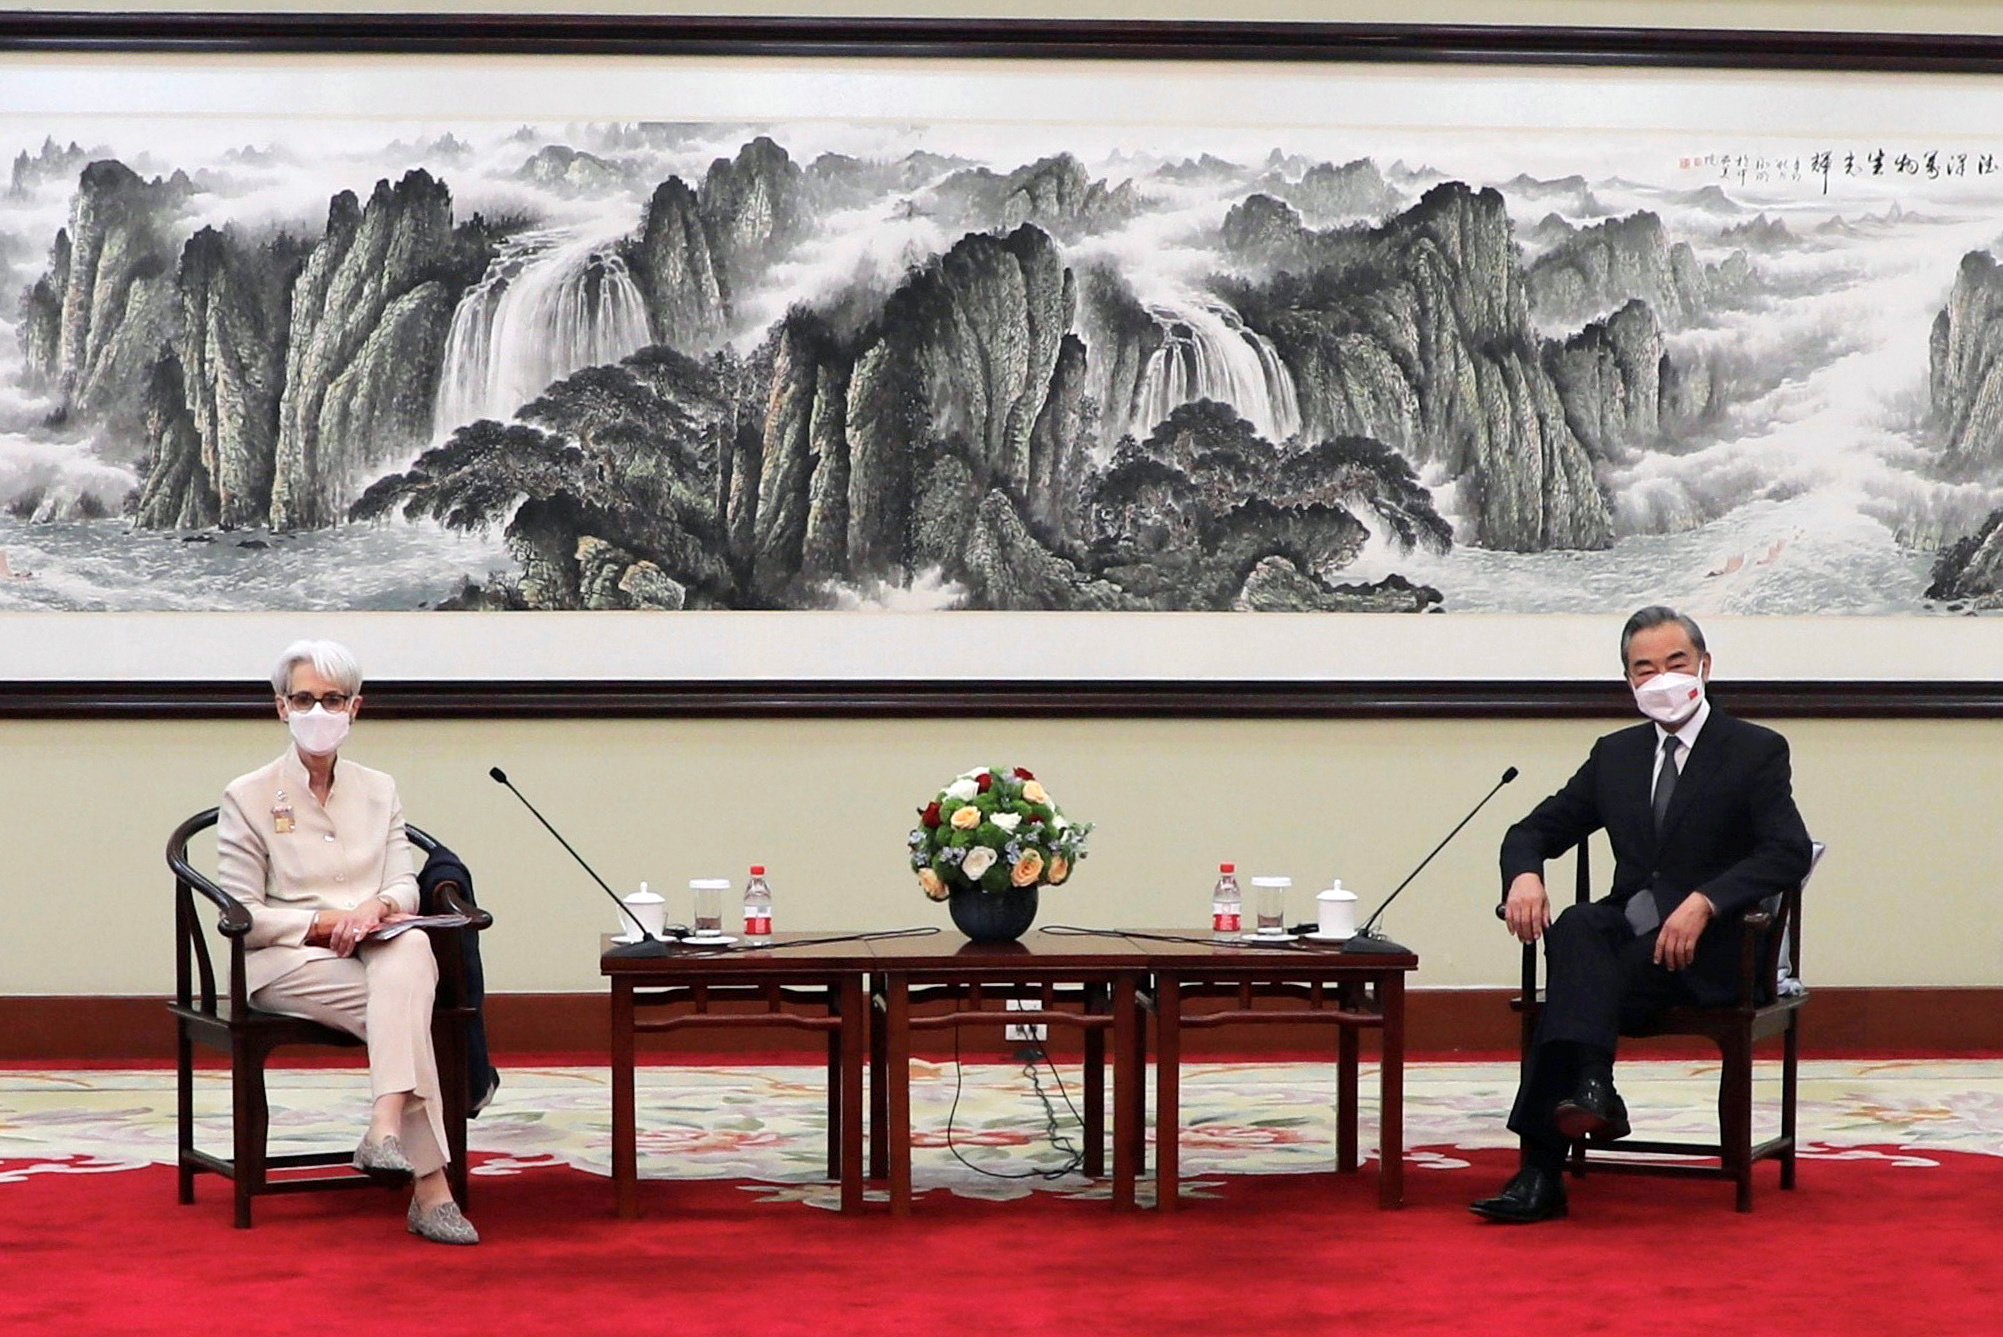 U.S. Deputy Secretary of State Wendy Sherman meets Chinese State Councilor and Foreign Minister Wang Yi in Tianjin, China in this handout picture released July 26, 2021. U.S. Department of State/Handout via REUTERS